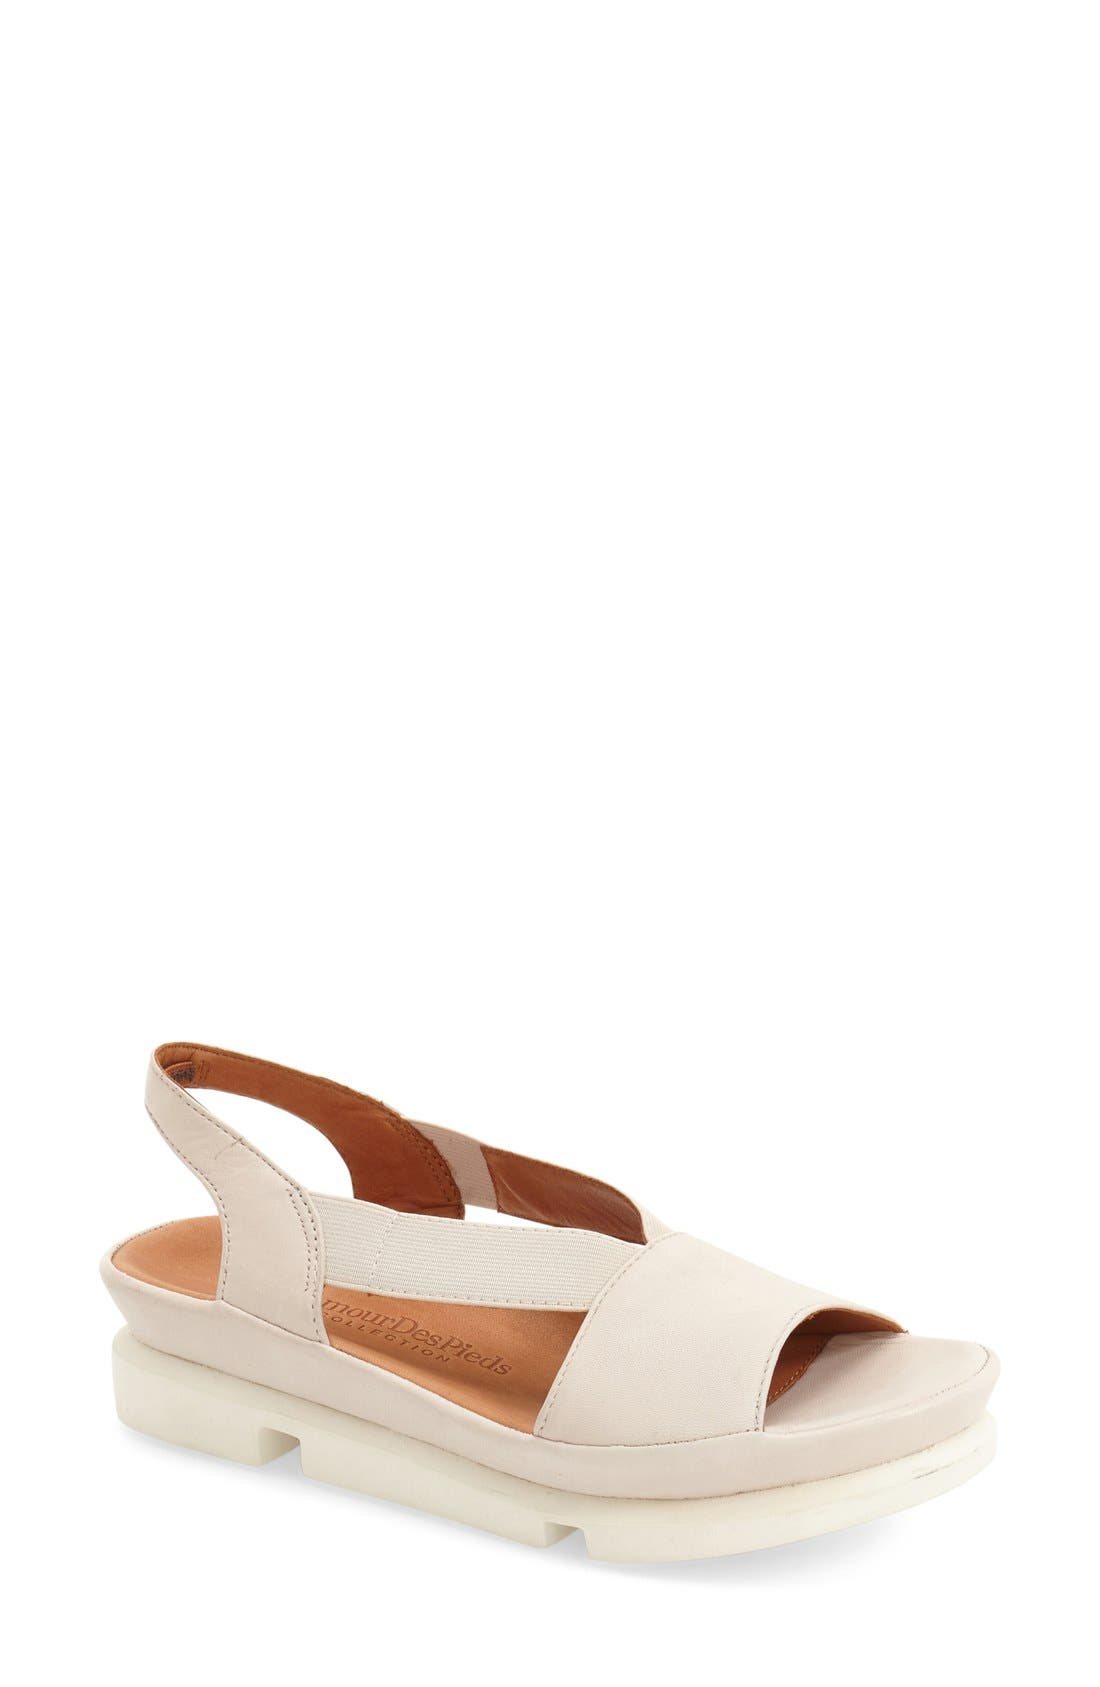 L'AMOUR DES PIEDS 'Vivyan' Sandal, Main, color, STONE LEATHER